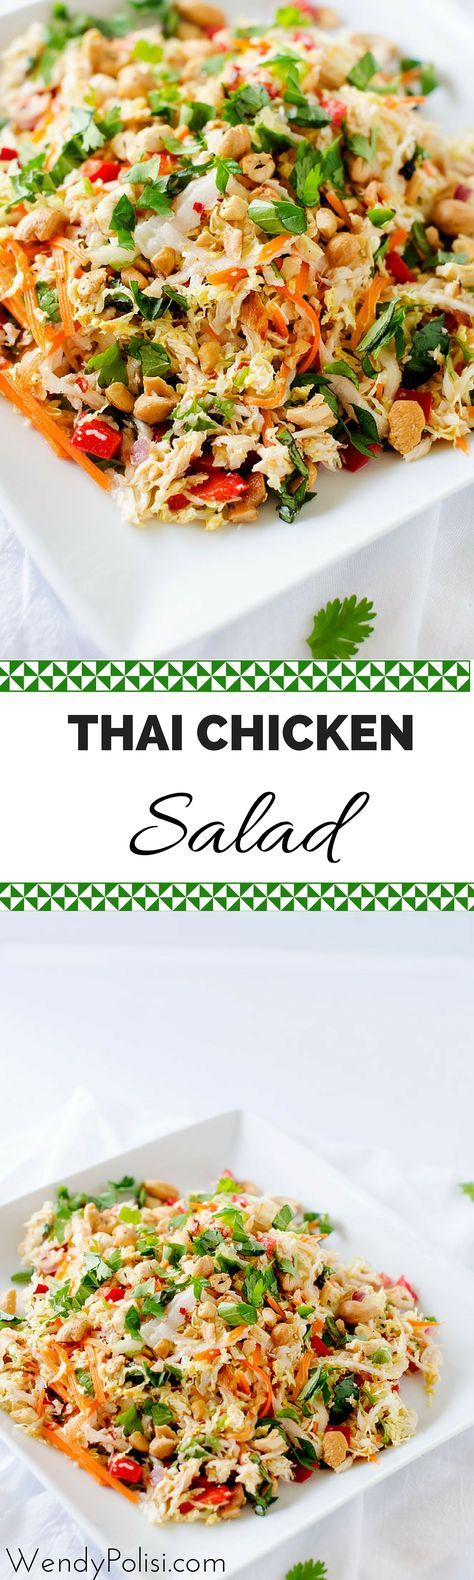 hai Chicken Salad with Ginger Lime Dressing - This healthy salad recipe is packed with flavor and texture!  Naturally gluten free and peanut free, this is a healthy meal you won't want to miss.- WendyPolisi.com